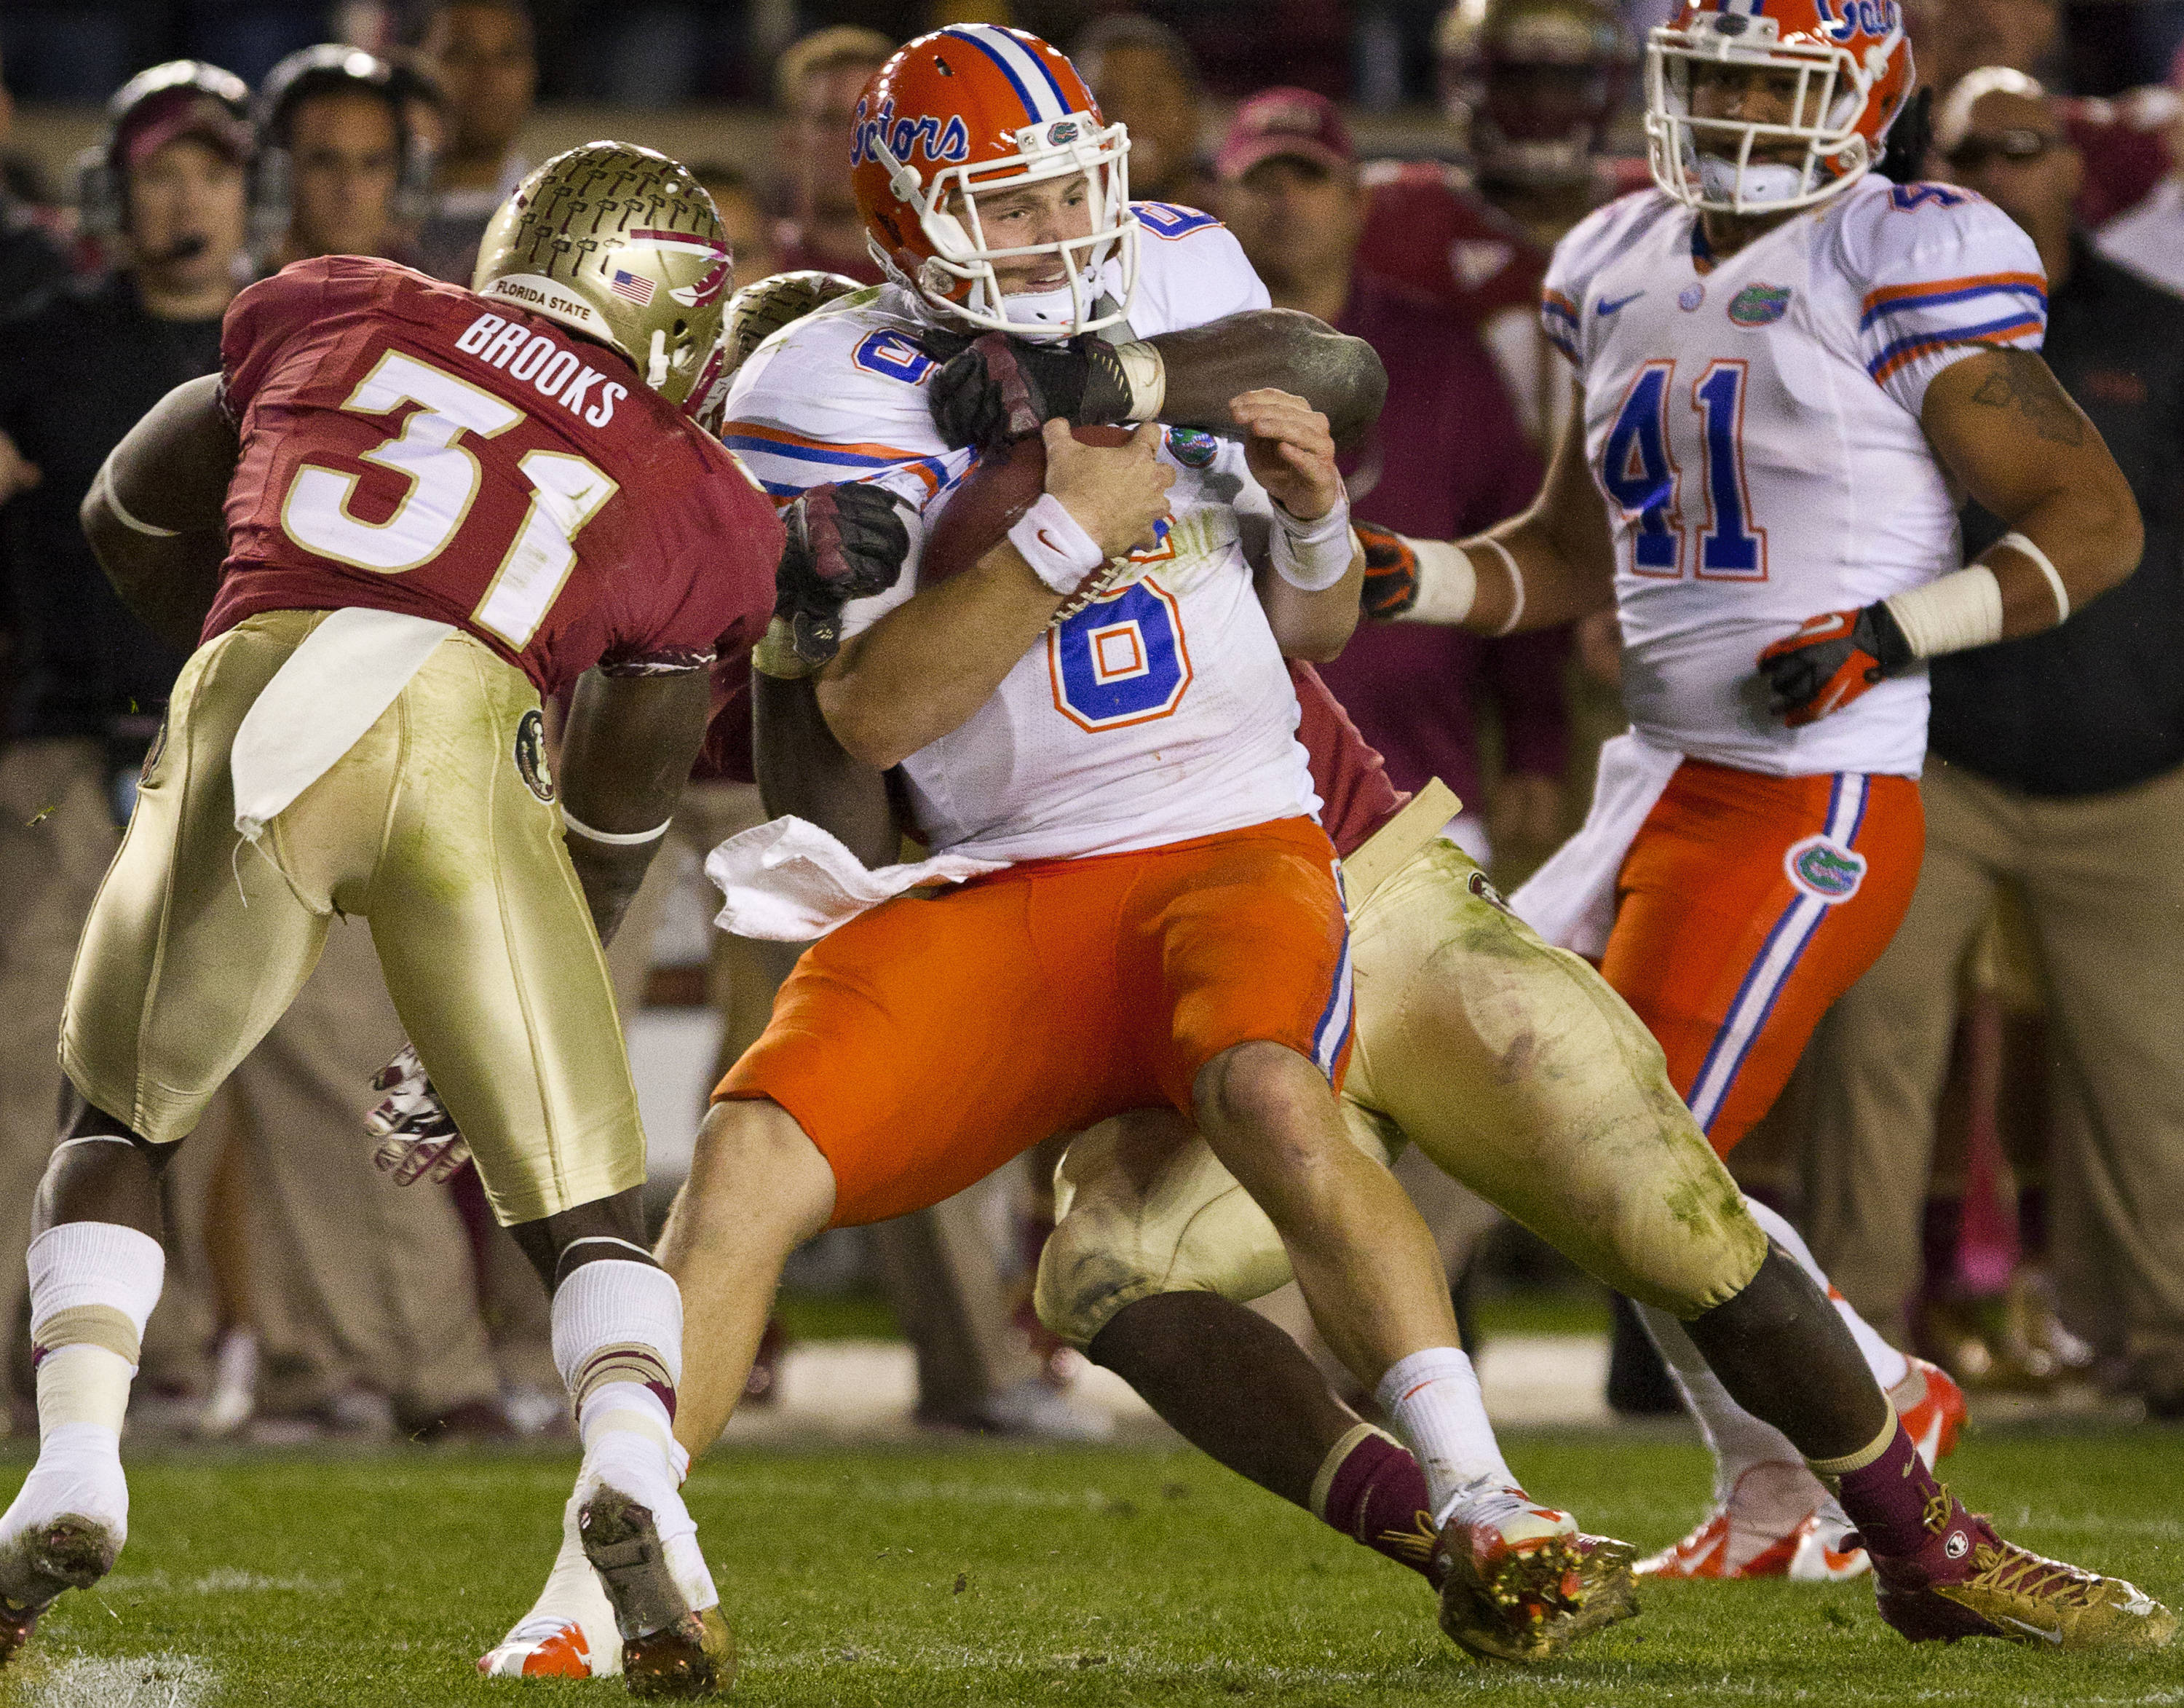 FSU defenders sack UF's quarterback during FSU Football's game against UF on Saturday, November 24, 2012 in Tallahassee, Fla.